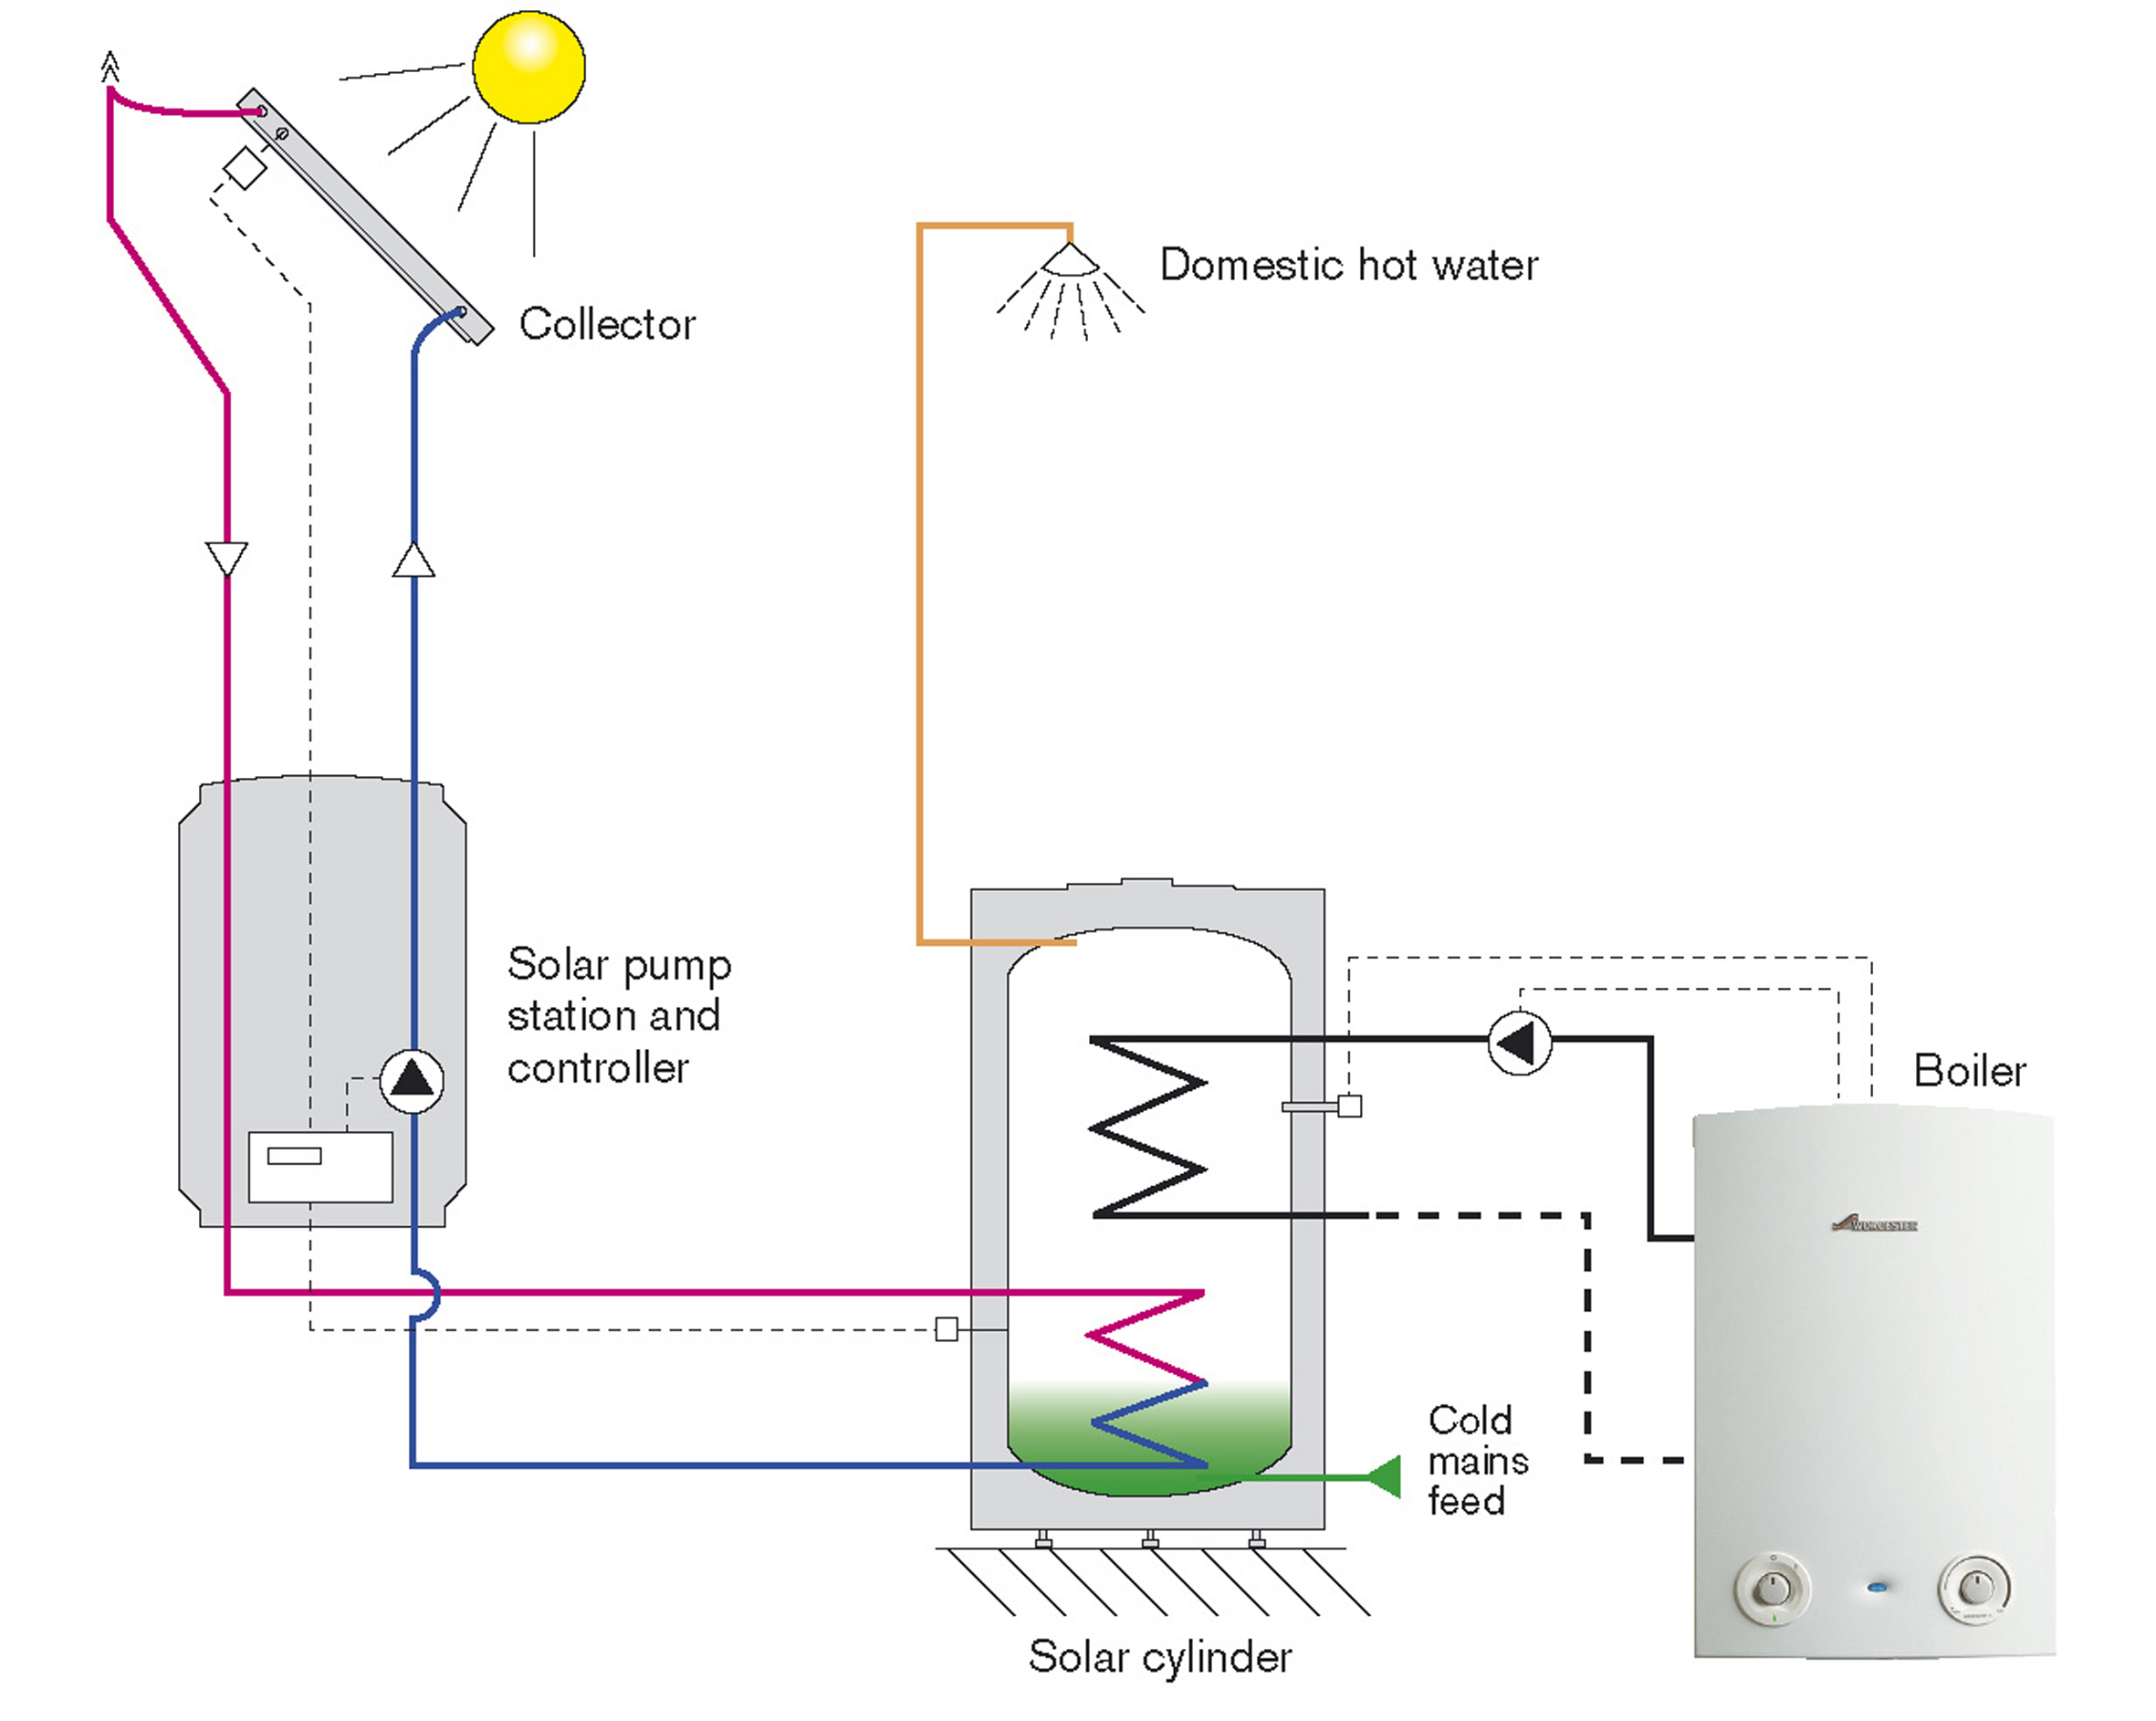 Elmore plumbing heating plumbing solar Energy efficient hot water systems